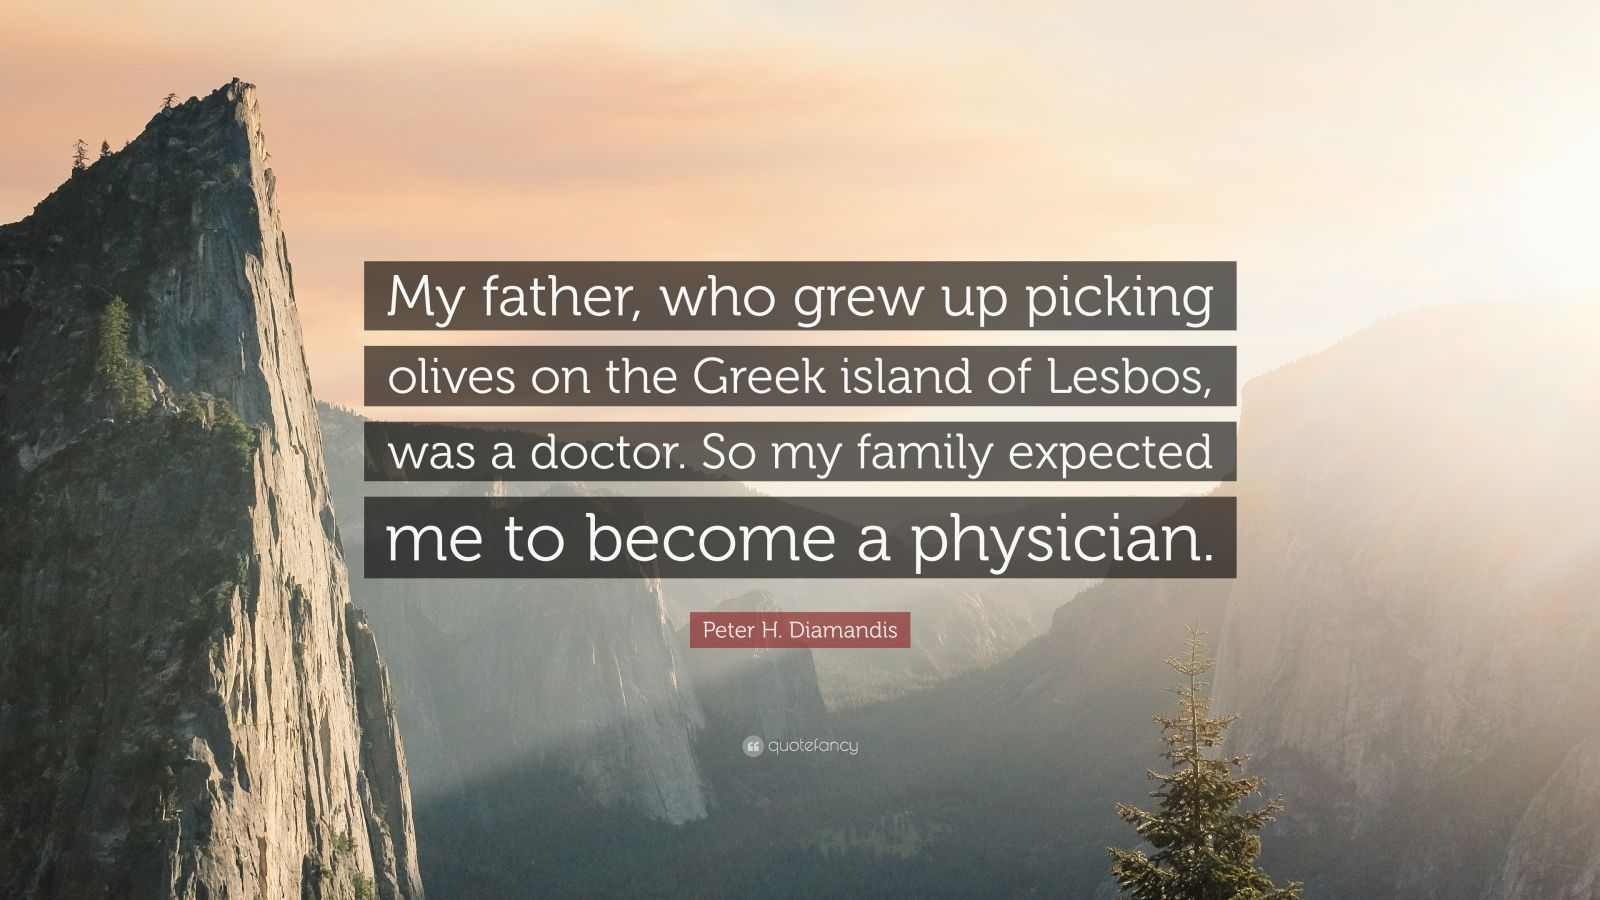 """Peter H. Diamandis Quote: """"My father, who grew up picking olives on the Greek island of Lesbos, was a doctor. So my family expected me to become a physician."""""""